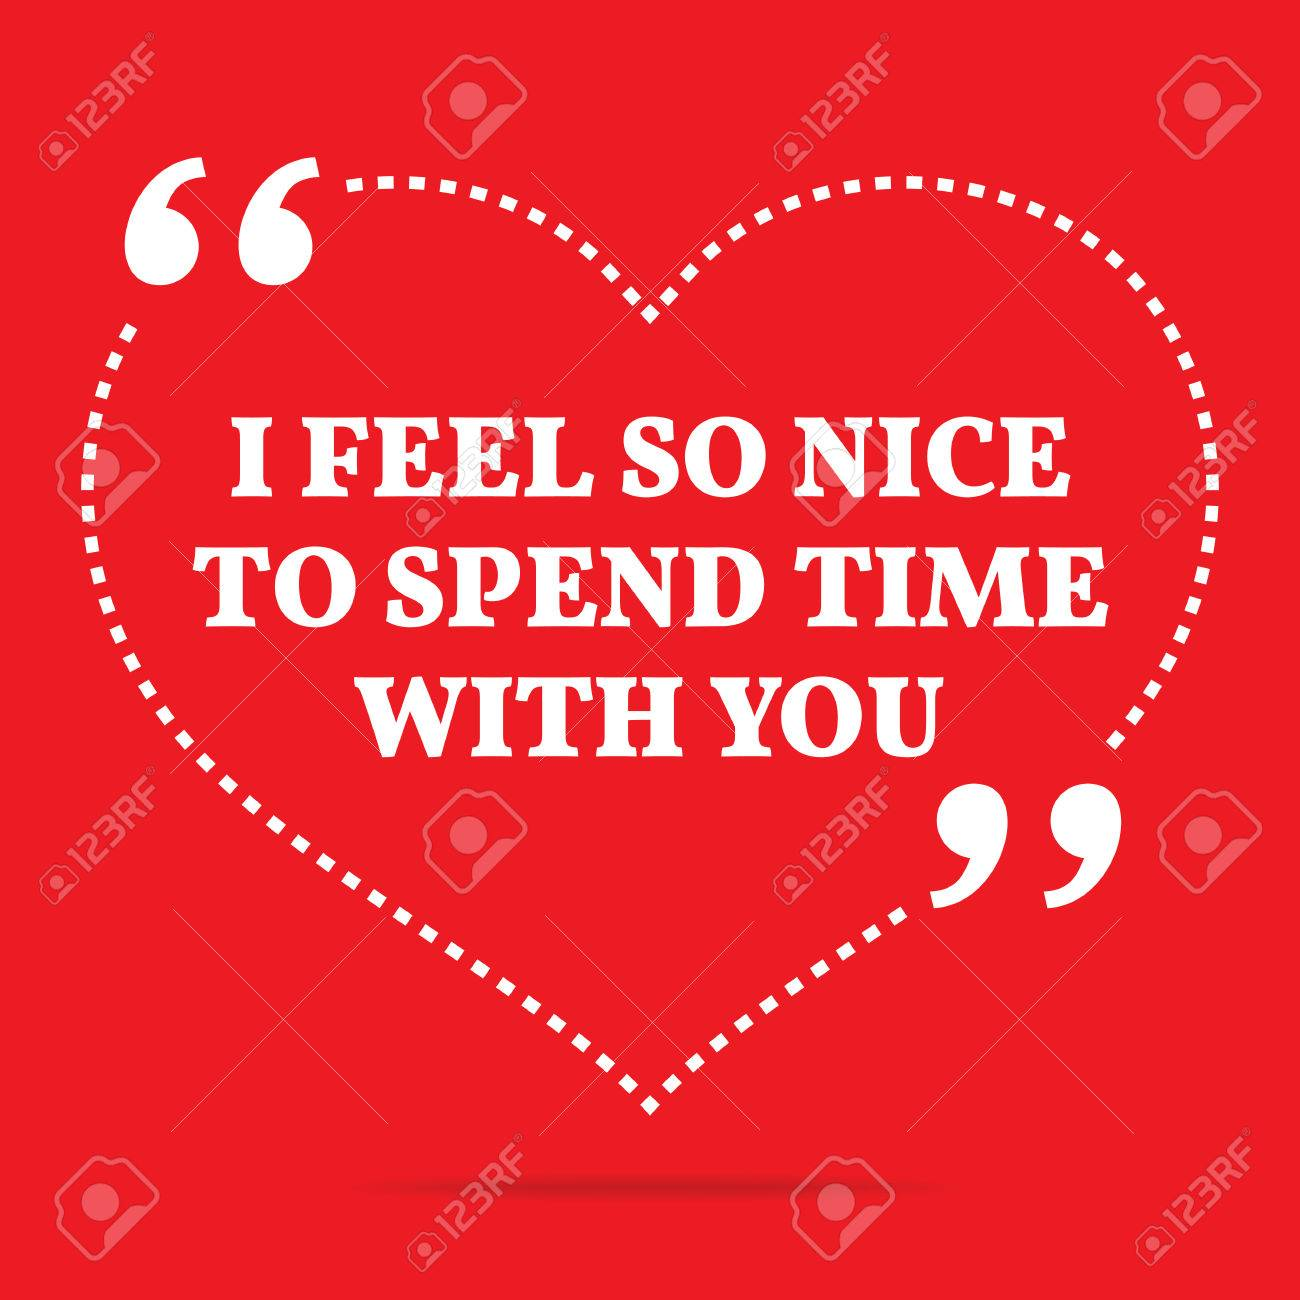 Spending time together quote